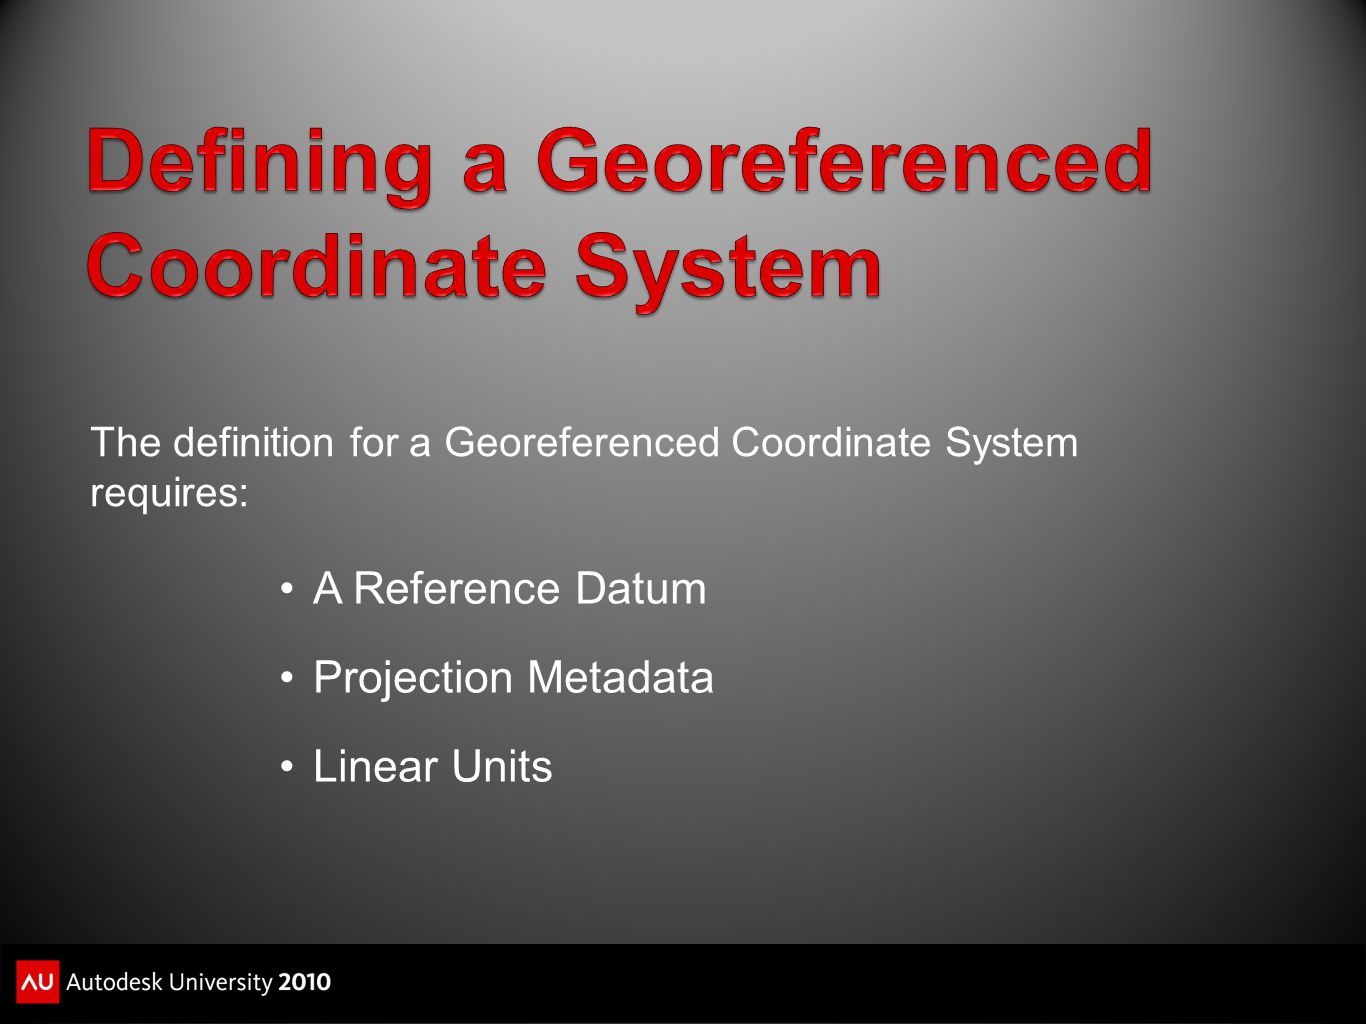 Defining a Georeferenced Coordinate System